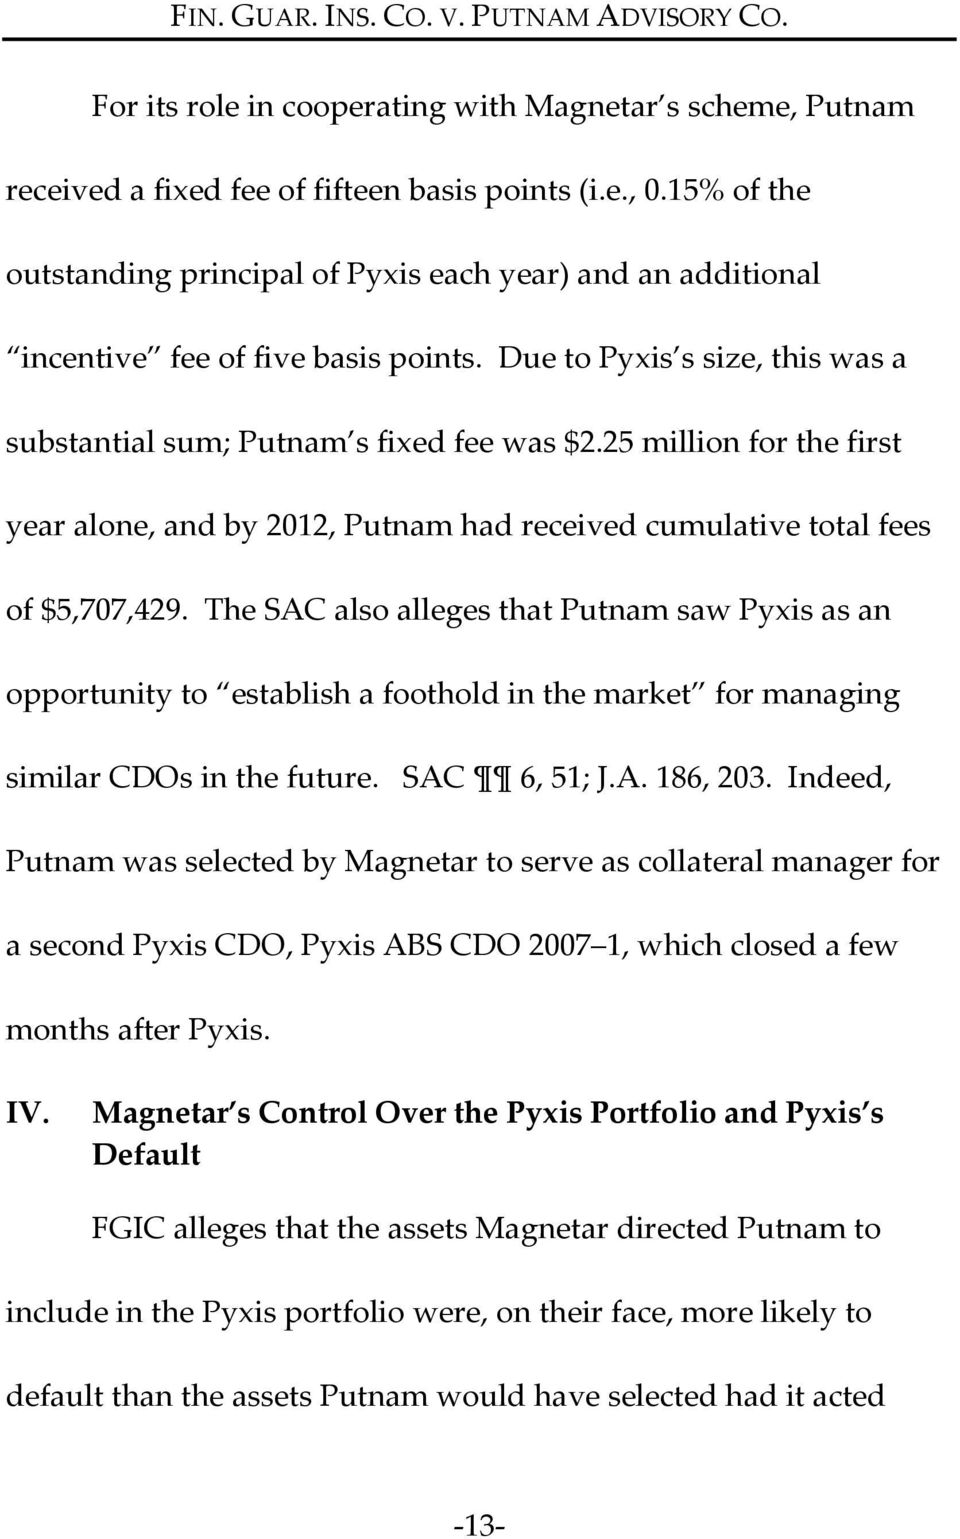 25 million for the first year alone, and by 2012, Putnam had received cumulative total fees of $5,707,429.